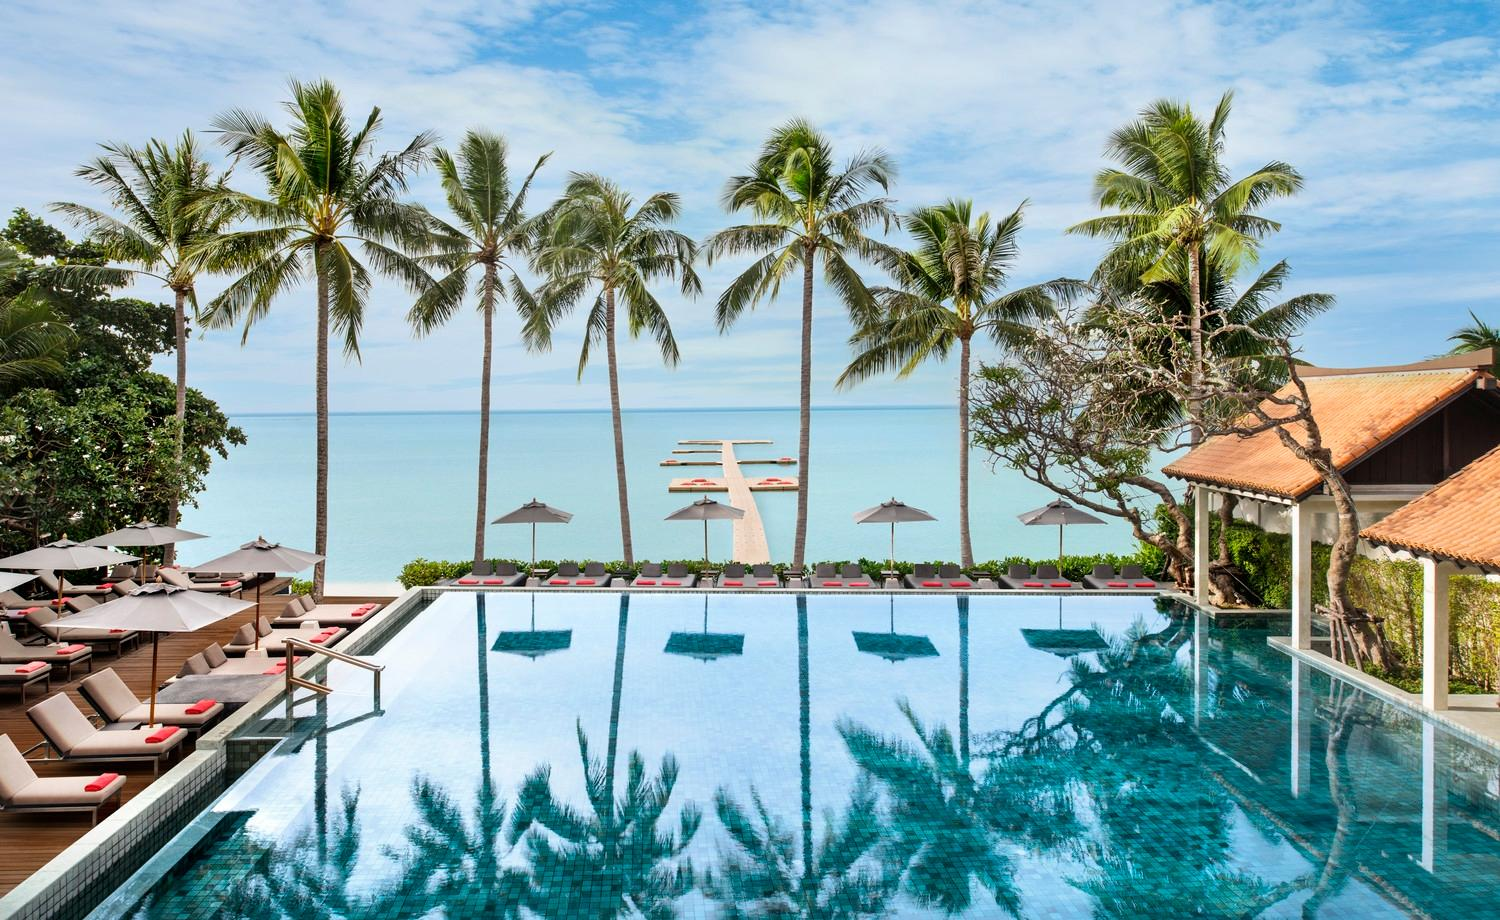 Escape From Budapest To Le Méridien In Samui